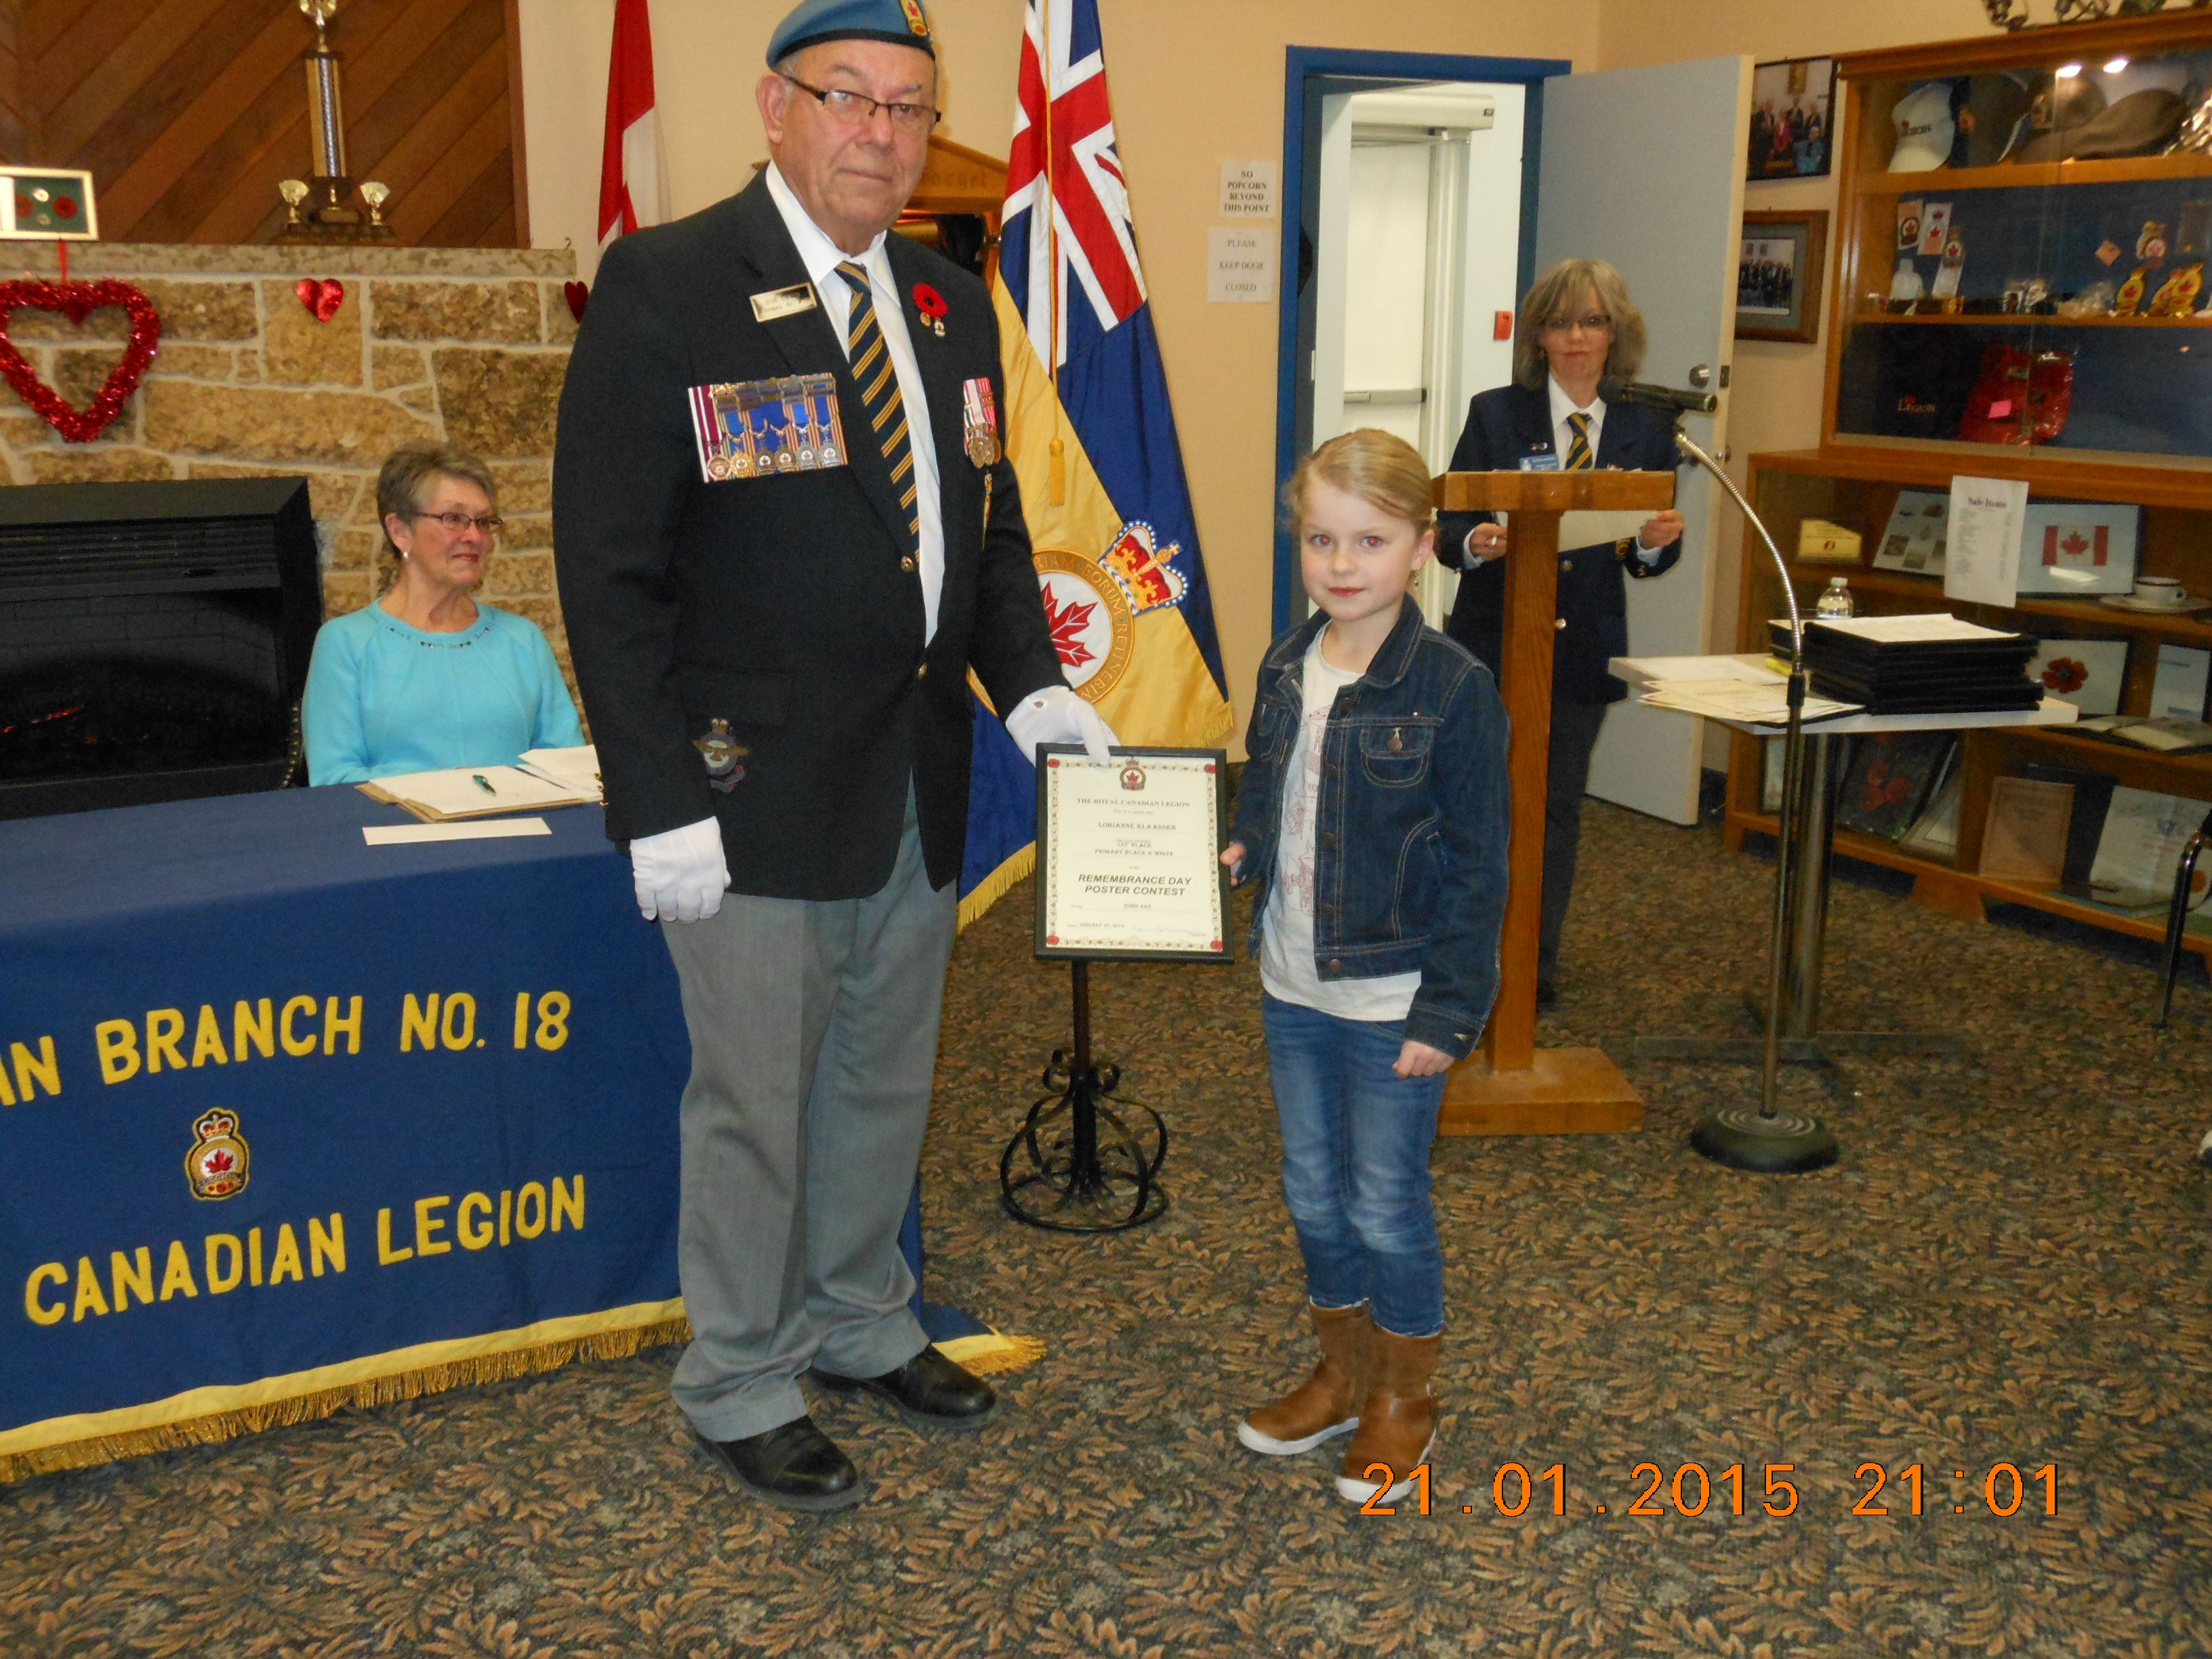 royal canadian legion essay contest 2011 View rachel hughes' professional profile on helping professionals like rachel hughes discover inside has won numerous national and international essay.